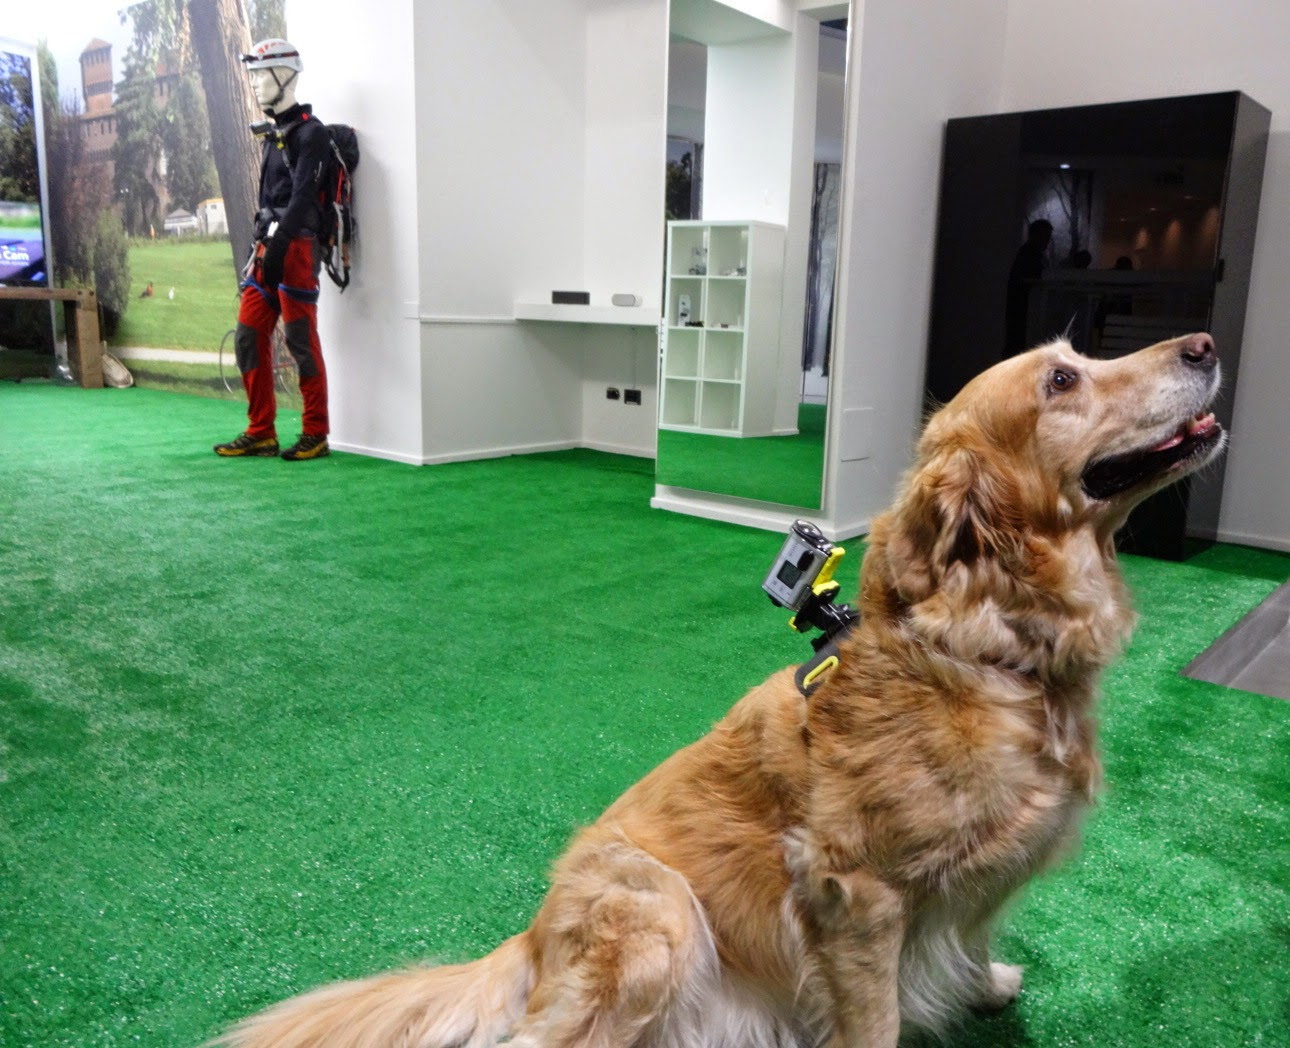 sony action cam, sony action cam dog, action cam cane